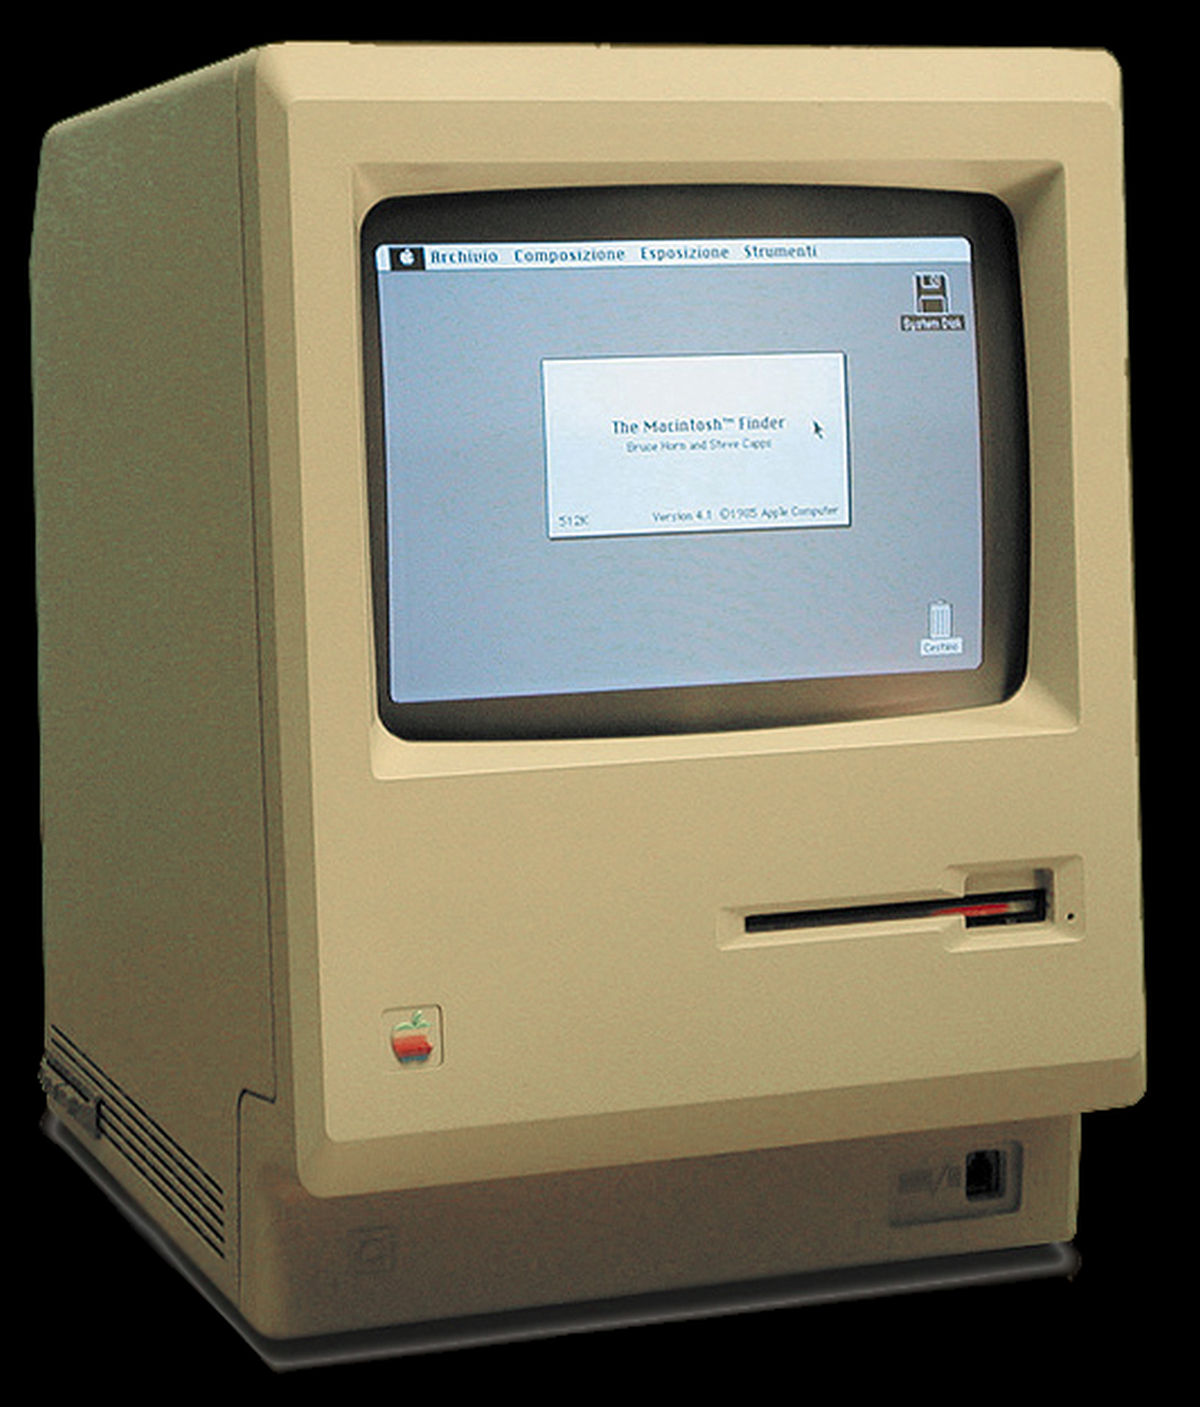 Macintosh 128k fra 1984.Foto: Wikipedia Commons